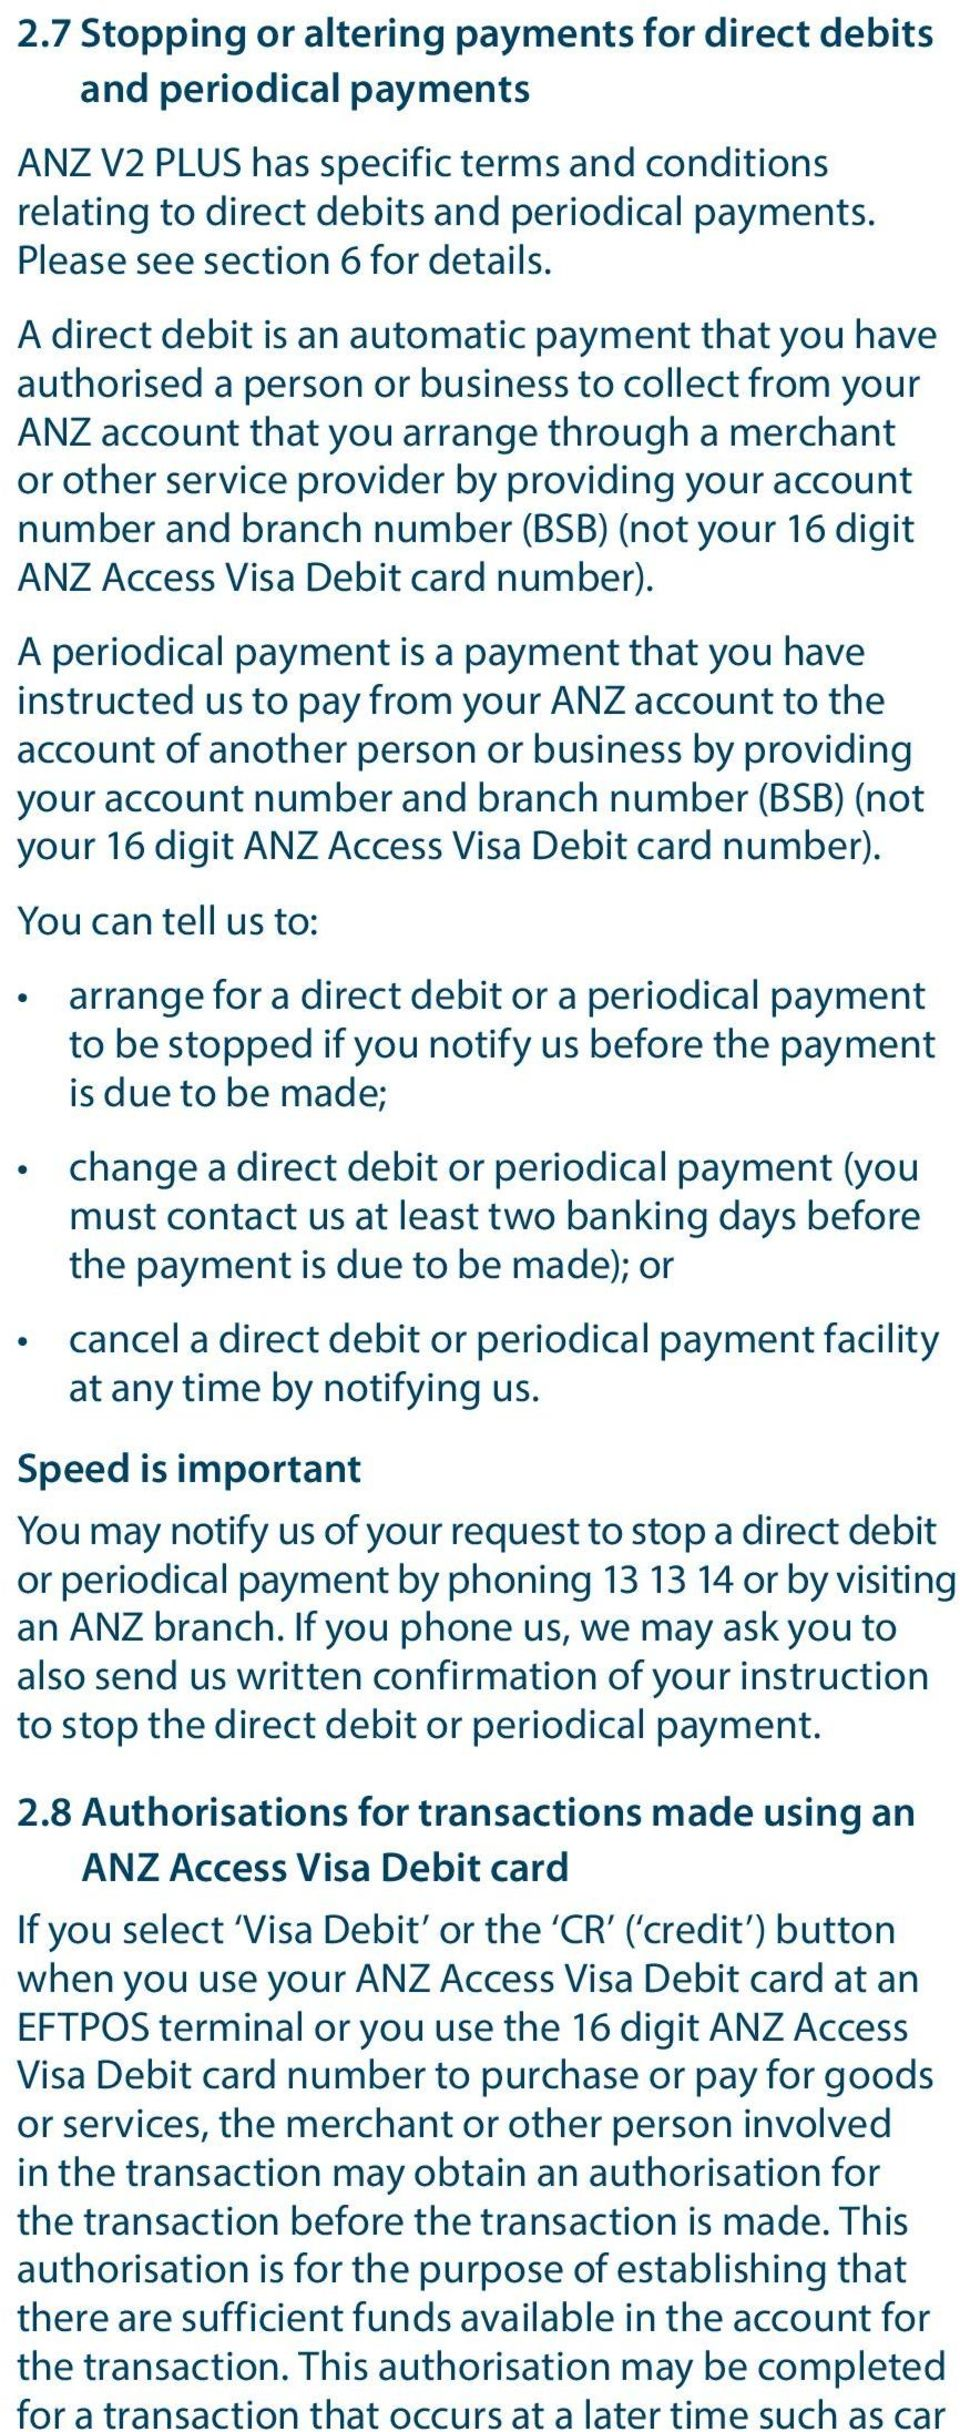 A direct debit is an automatic payment that you have authorised a person or business to collect from your ANZ account that you arrange through a merchant or other service provider by providing your